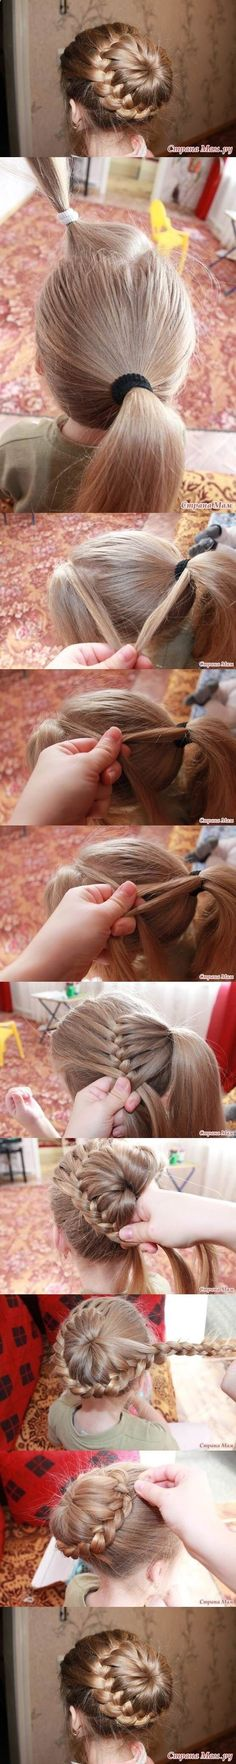 French braid bun ......  [March 2016]   Also, Go to RMR 4 BREAKING NEWS !!! ...  RMR4 INTERNATIONAL.INFO  ... Register for our BREAKING NEWS Webinar Broadcast at:  www.rmr4international.info/500_tasty_diabetic_recipes.htm    ... Don't miss it!